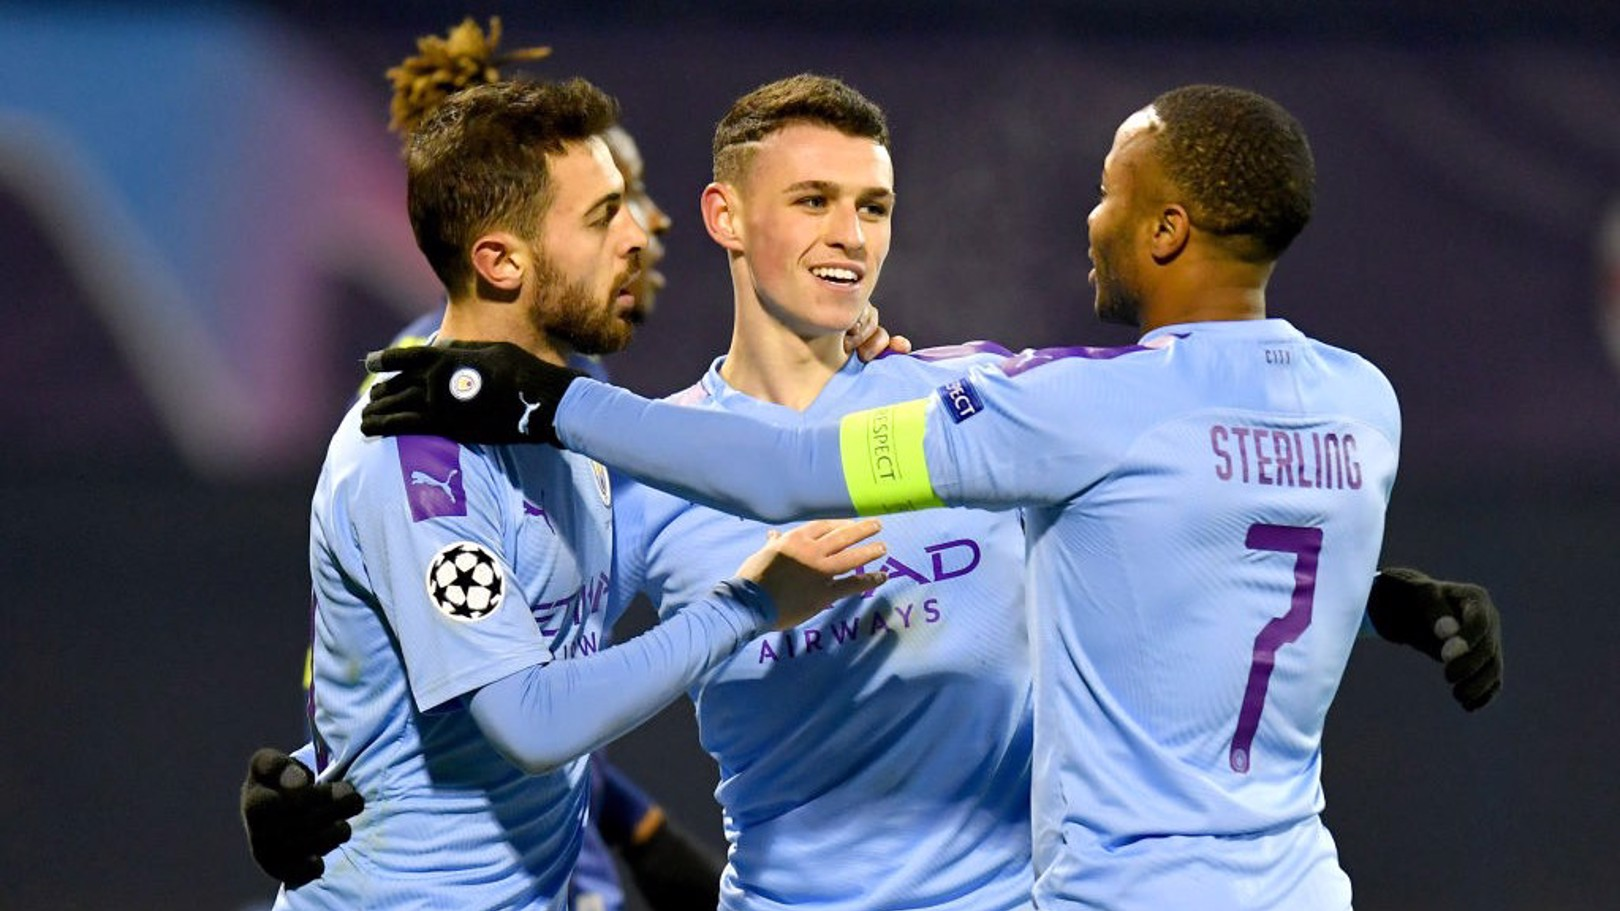 TEAM NEWS: Phil Foden starts at Arsenal after a fine display in midweek